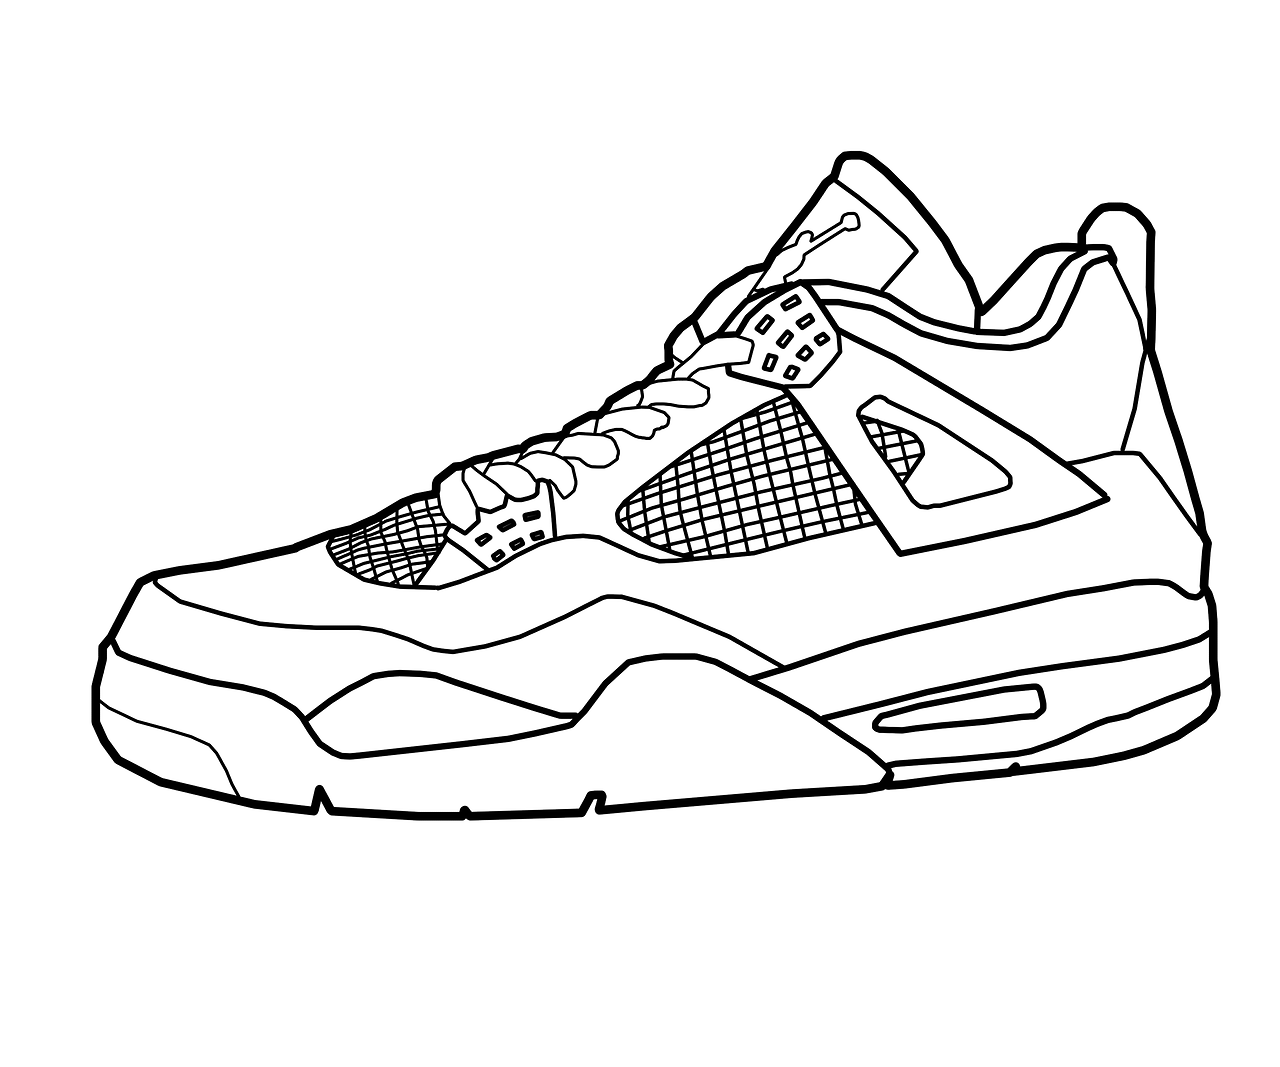 coloring pictures of shoes basketball shoes coloring pages to printable colouring pictures coloring shoes of